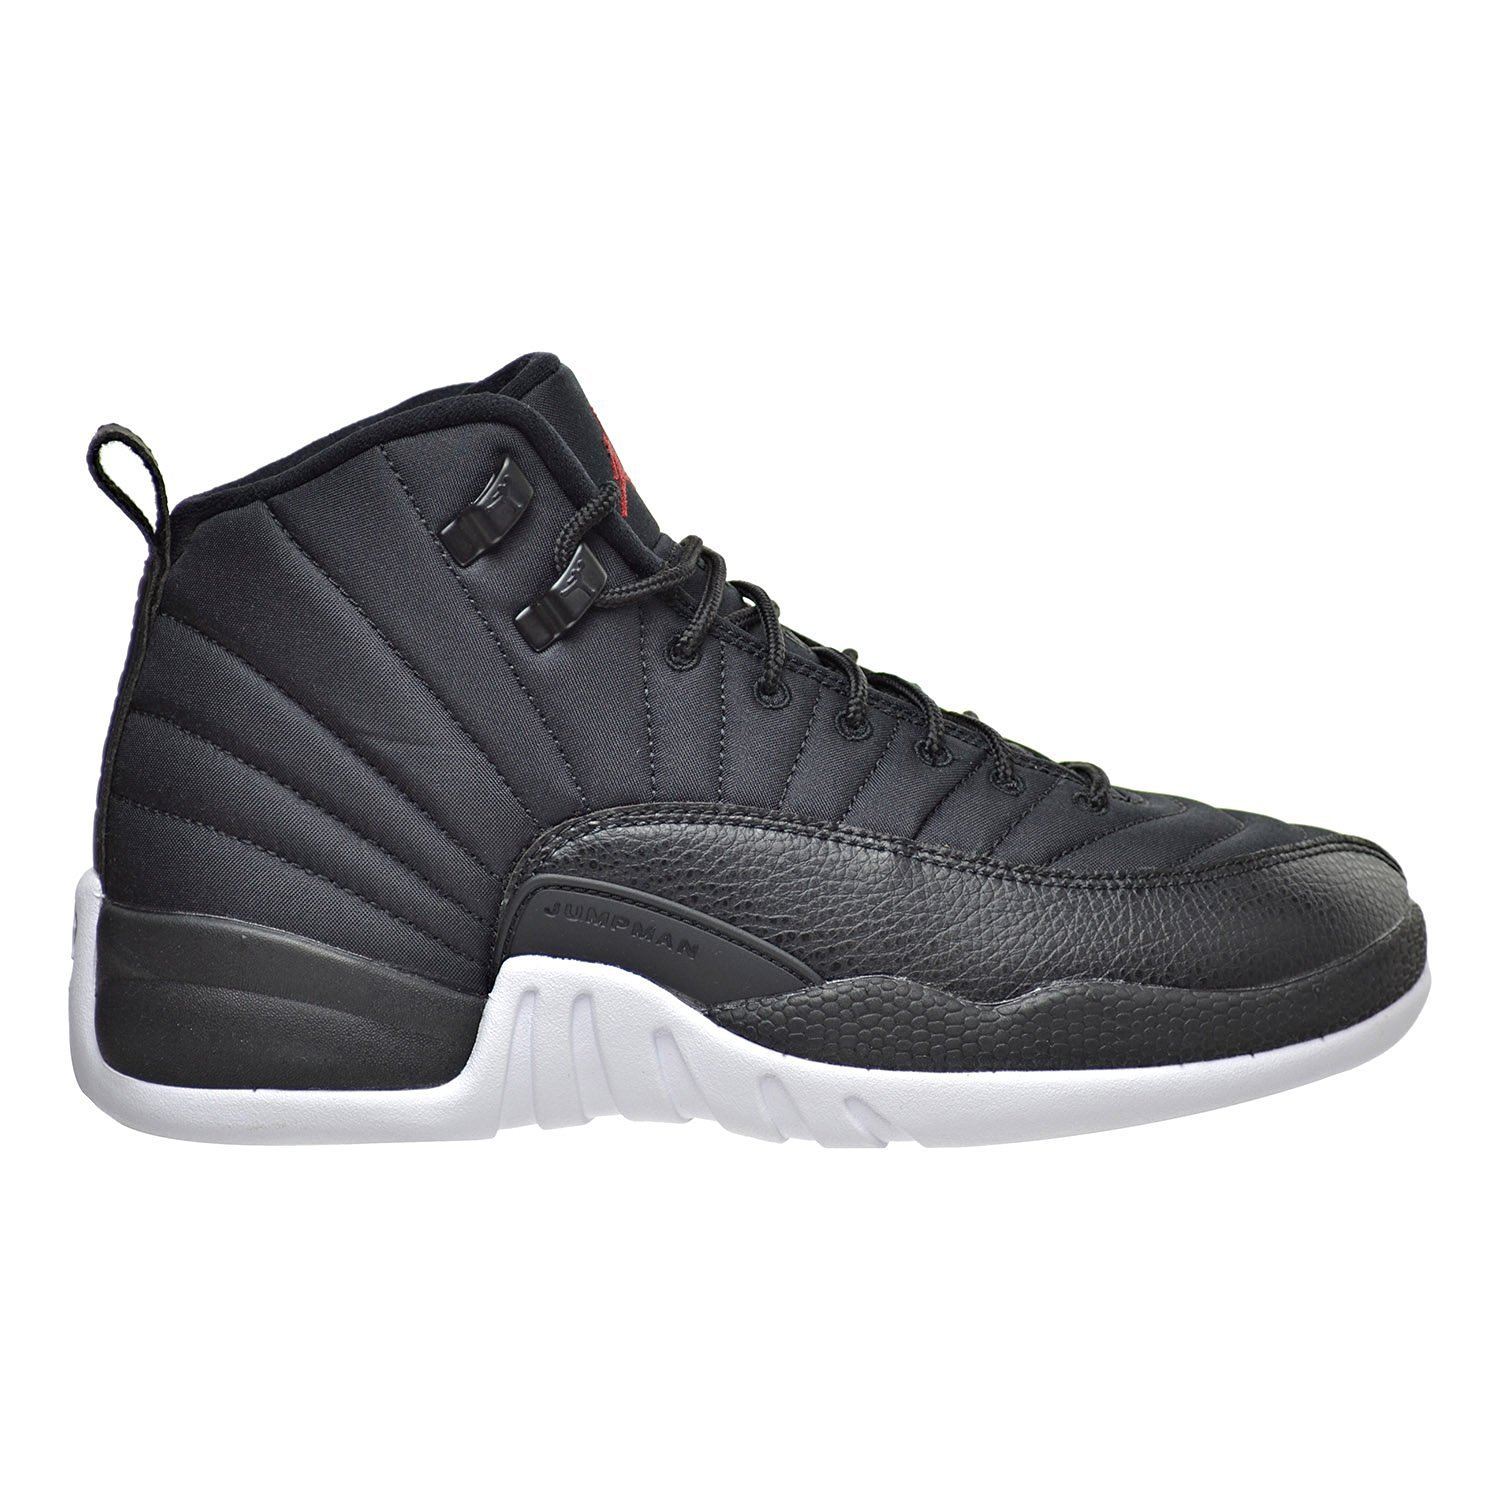 Nike Air Jordan 12 Retro BG Basketball Trainers Sneaker black/white/red, EU Shoe Size:EUR 39, Color black